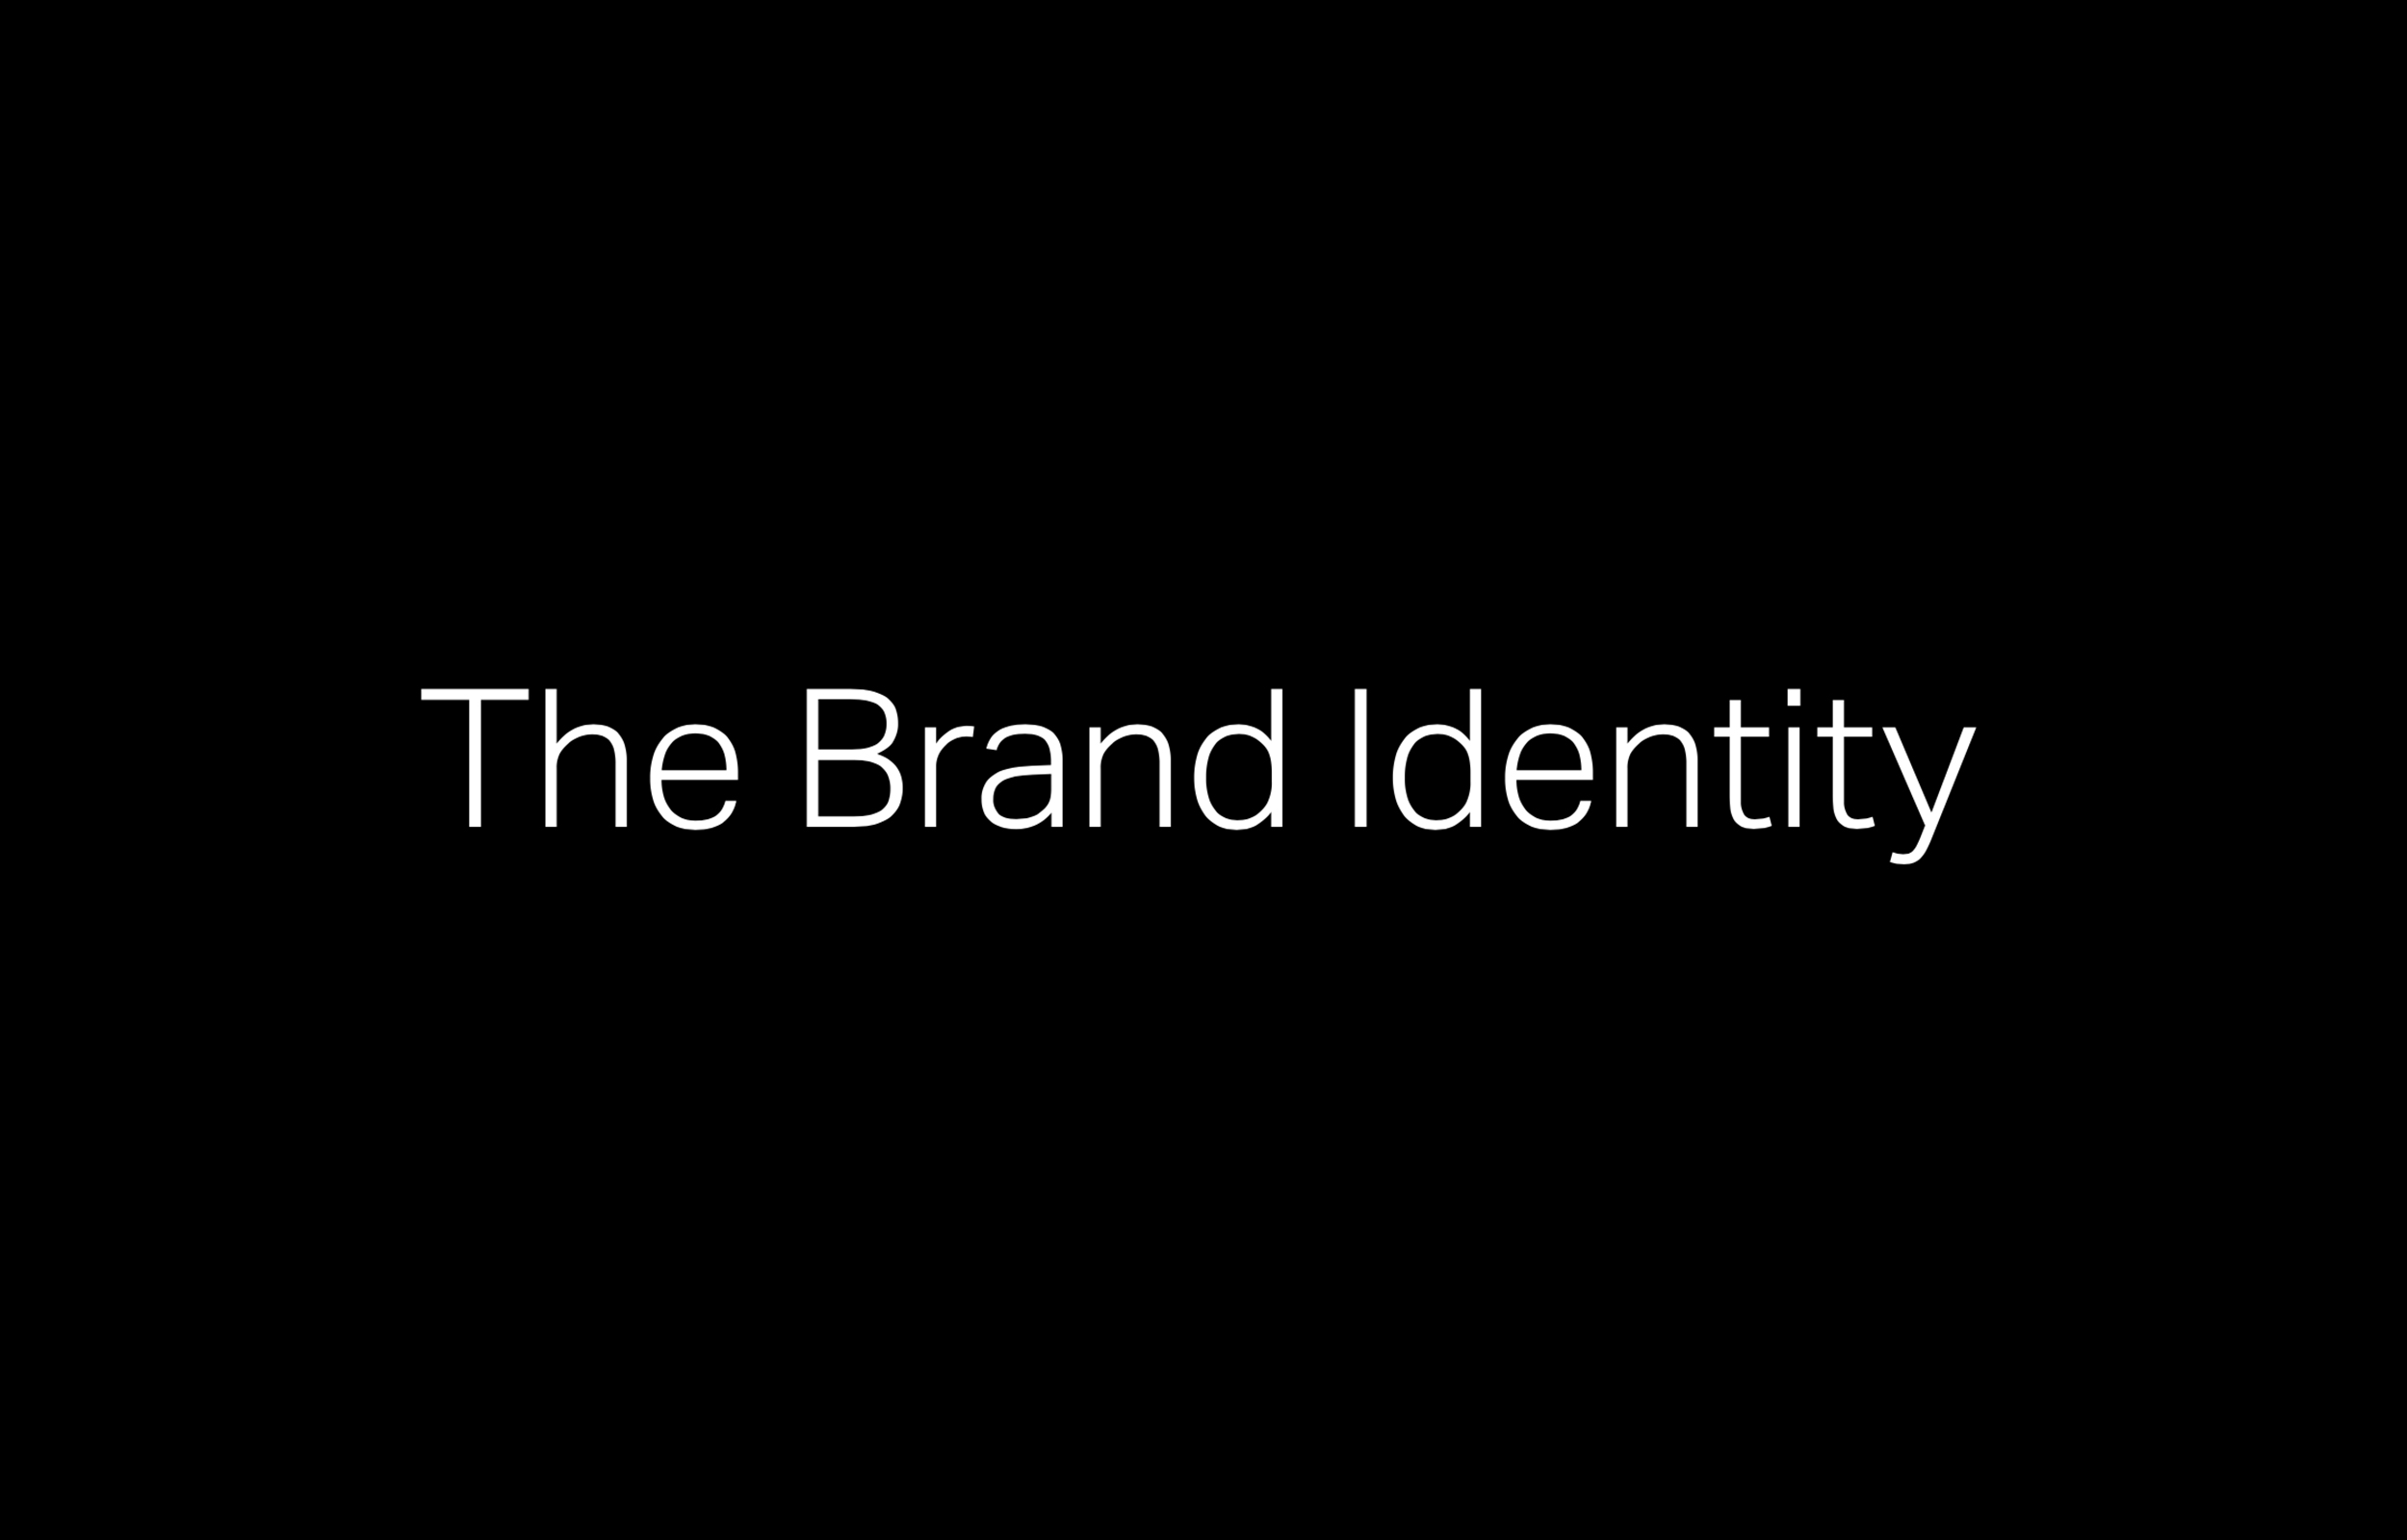 Tio Joe on The Brand Identity